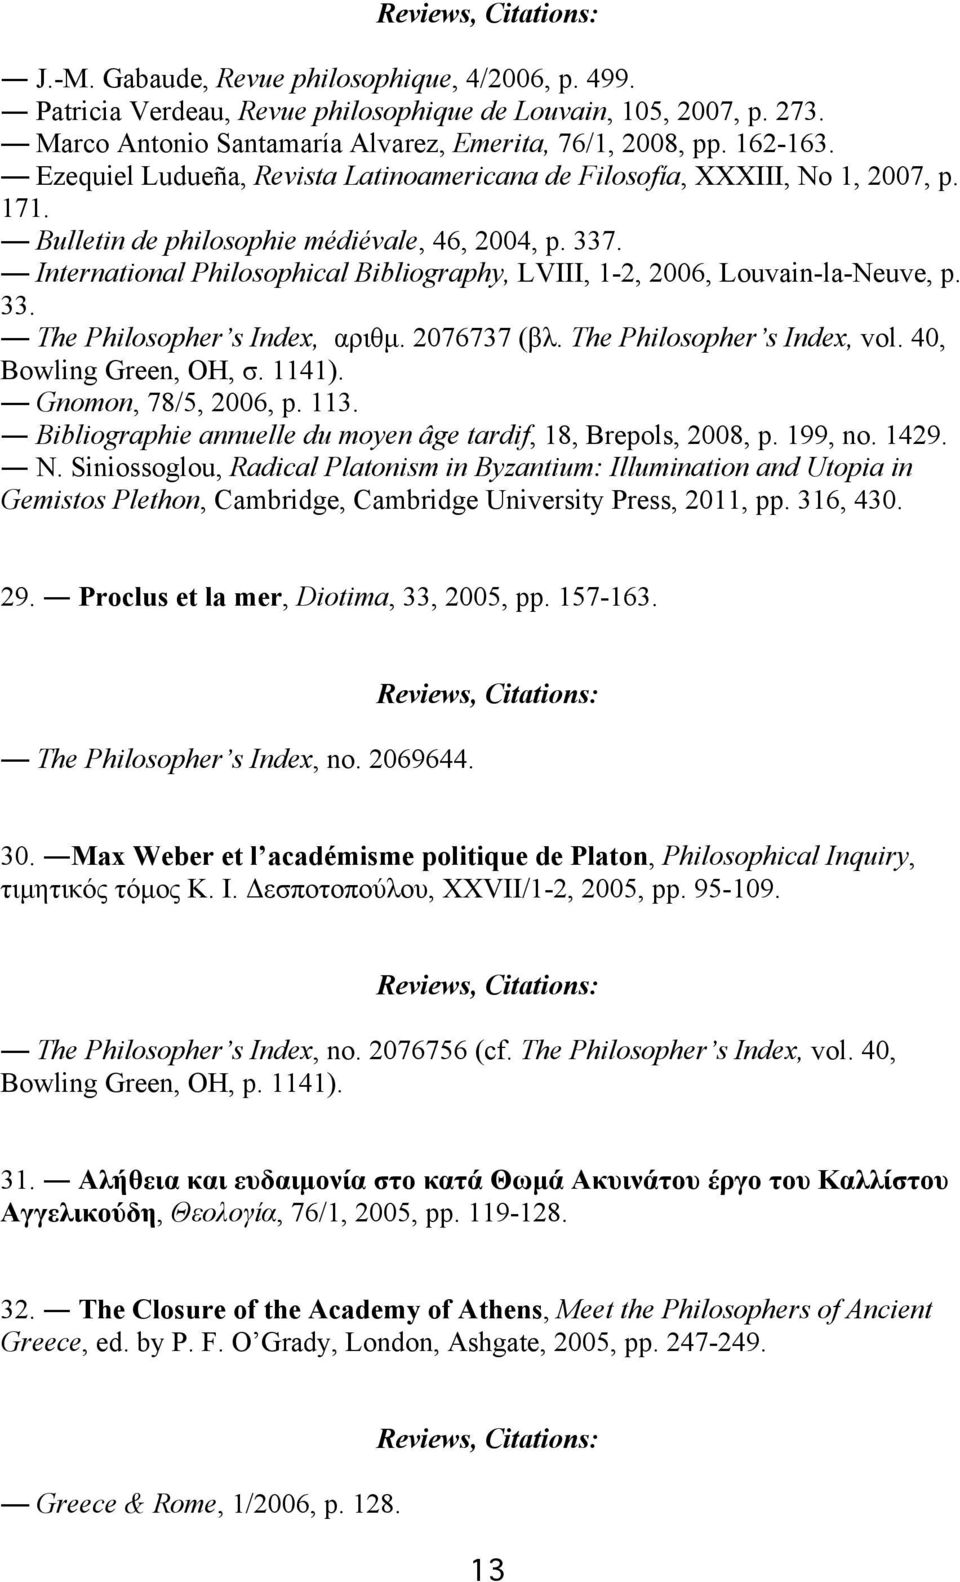 International Philosophical Bibliography, LVIII, 1-2, 2006, Louvain-la-Neuve, p. 33. The Philosopher s Index, αριθµ. 2076737 (βλ. The Philosopher s Index, vol. 40, Bowling Green, OH, σ. 1141).